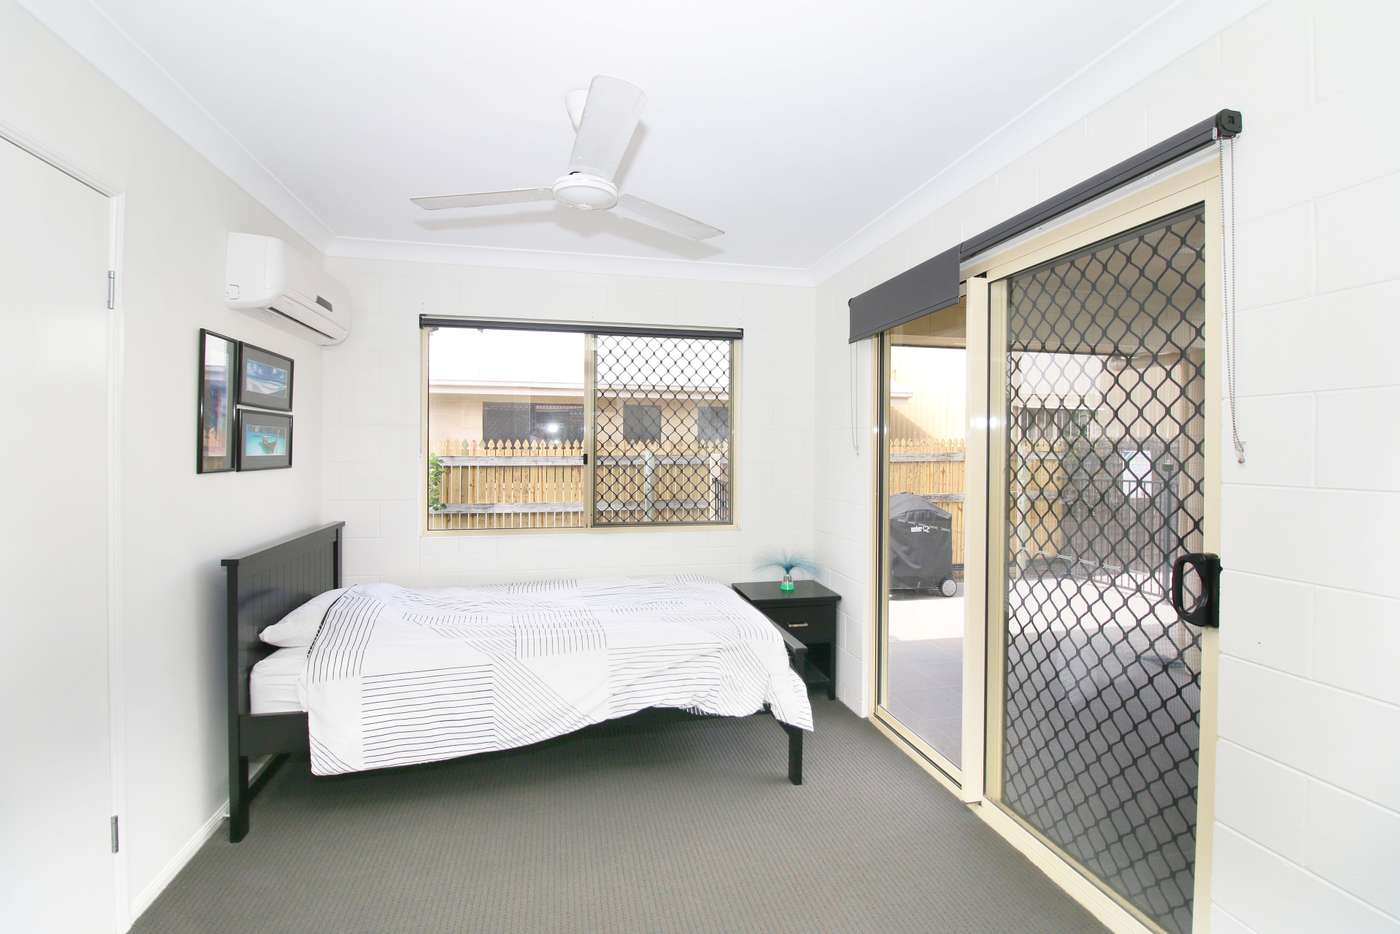 Seventh view of Homely house listing, 3 Nightingale Court, Condon QLD 4815